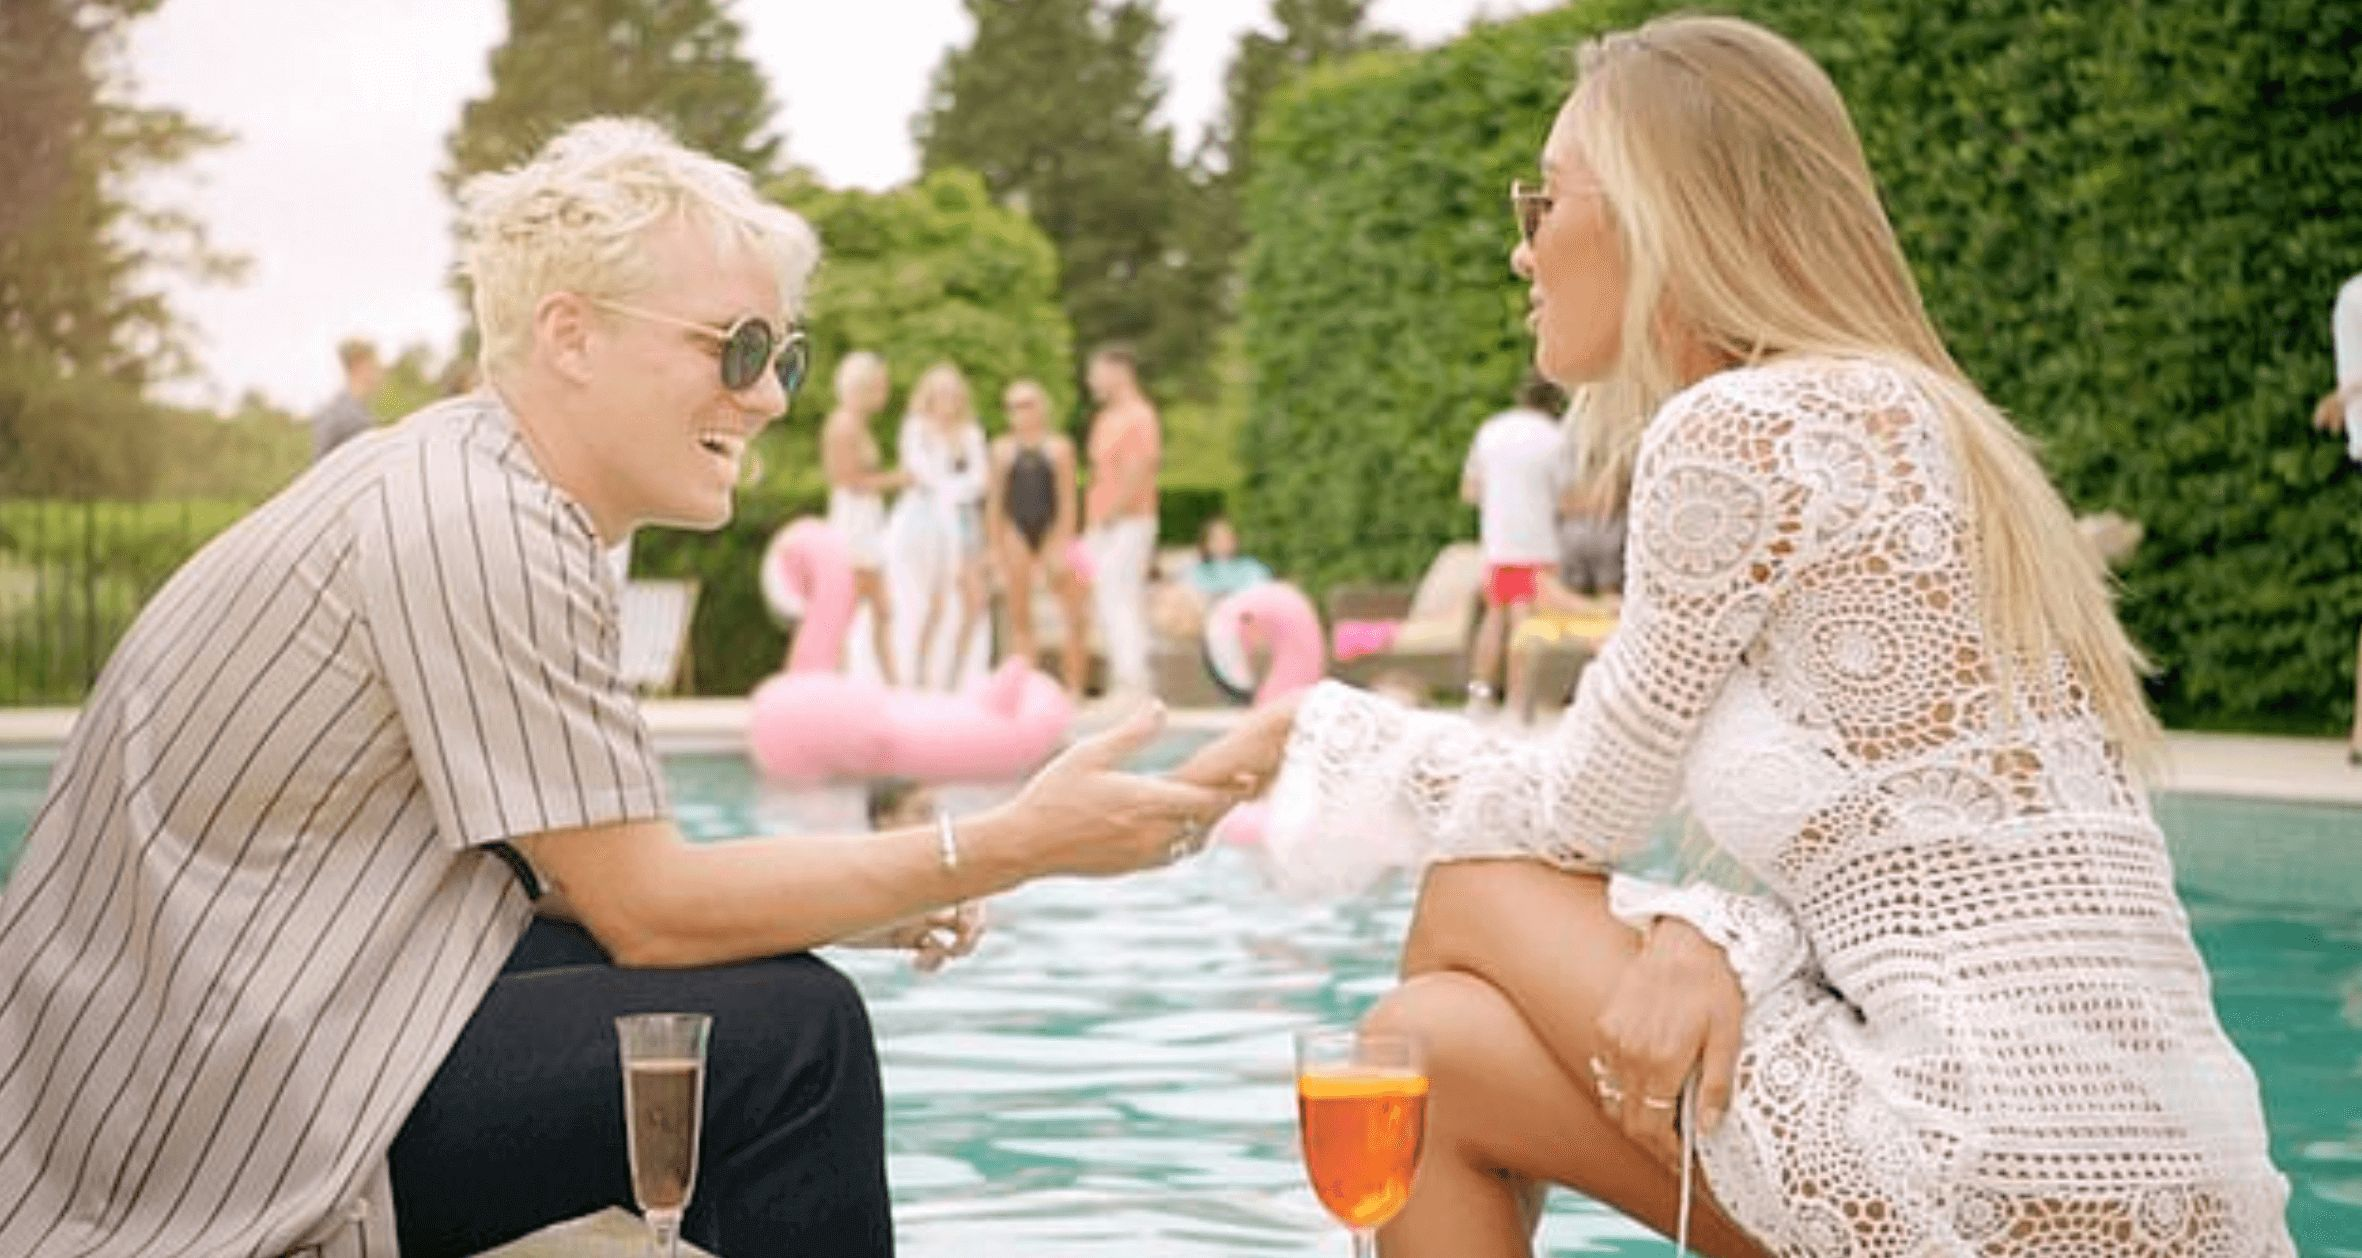 Image may contain: Made in Chelsea series 18, Made in Chelsea, 18, season, new, cast, news, trailer, start date, plot, spoilers, what happens, Jamie Laing, Sophie Habboo, Habbs, Glass, Drink, Beverage, Blonde, Female, Teen, Woman, Girl, Child, Kid, Accessory, Sunglasses, Accessories, Person, Human